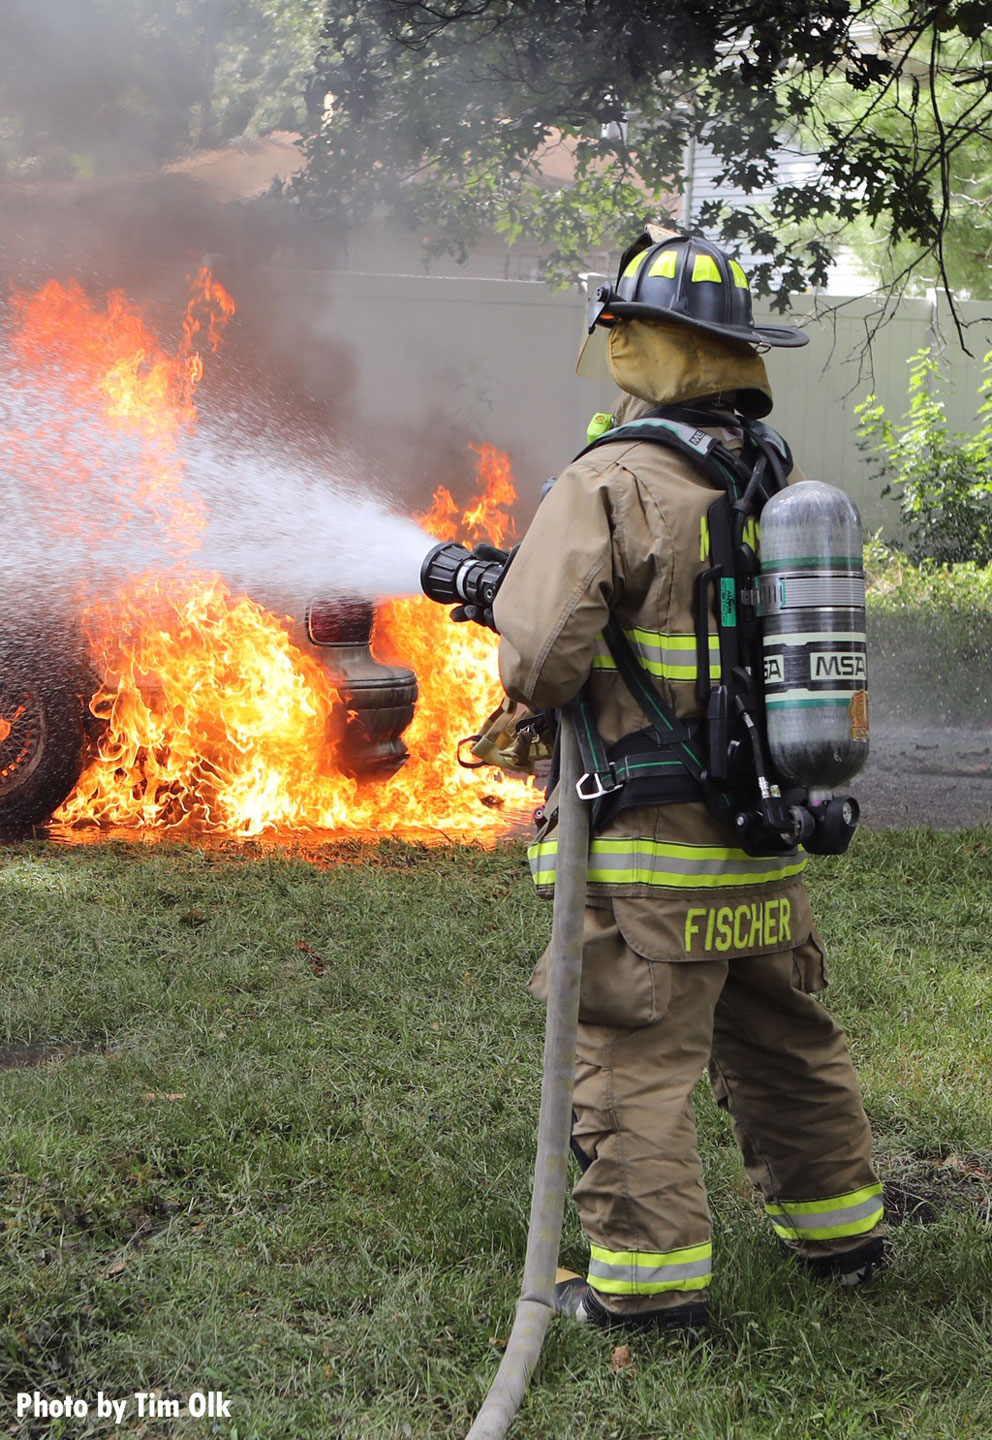 Another photo of a firefighter with a hoseline putting water on the fire.